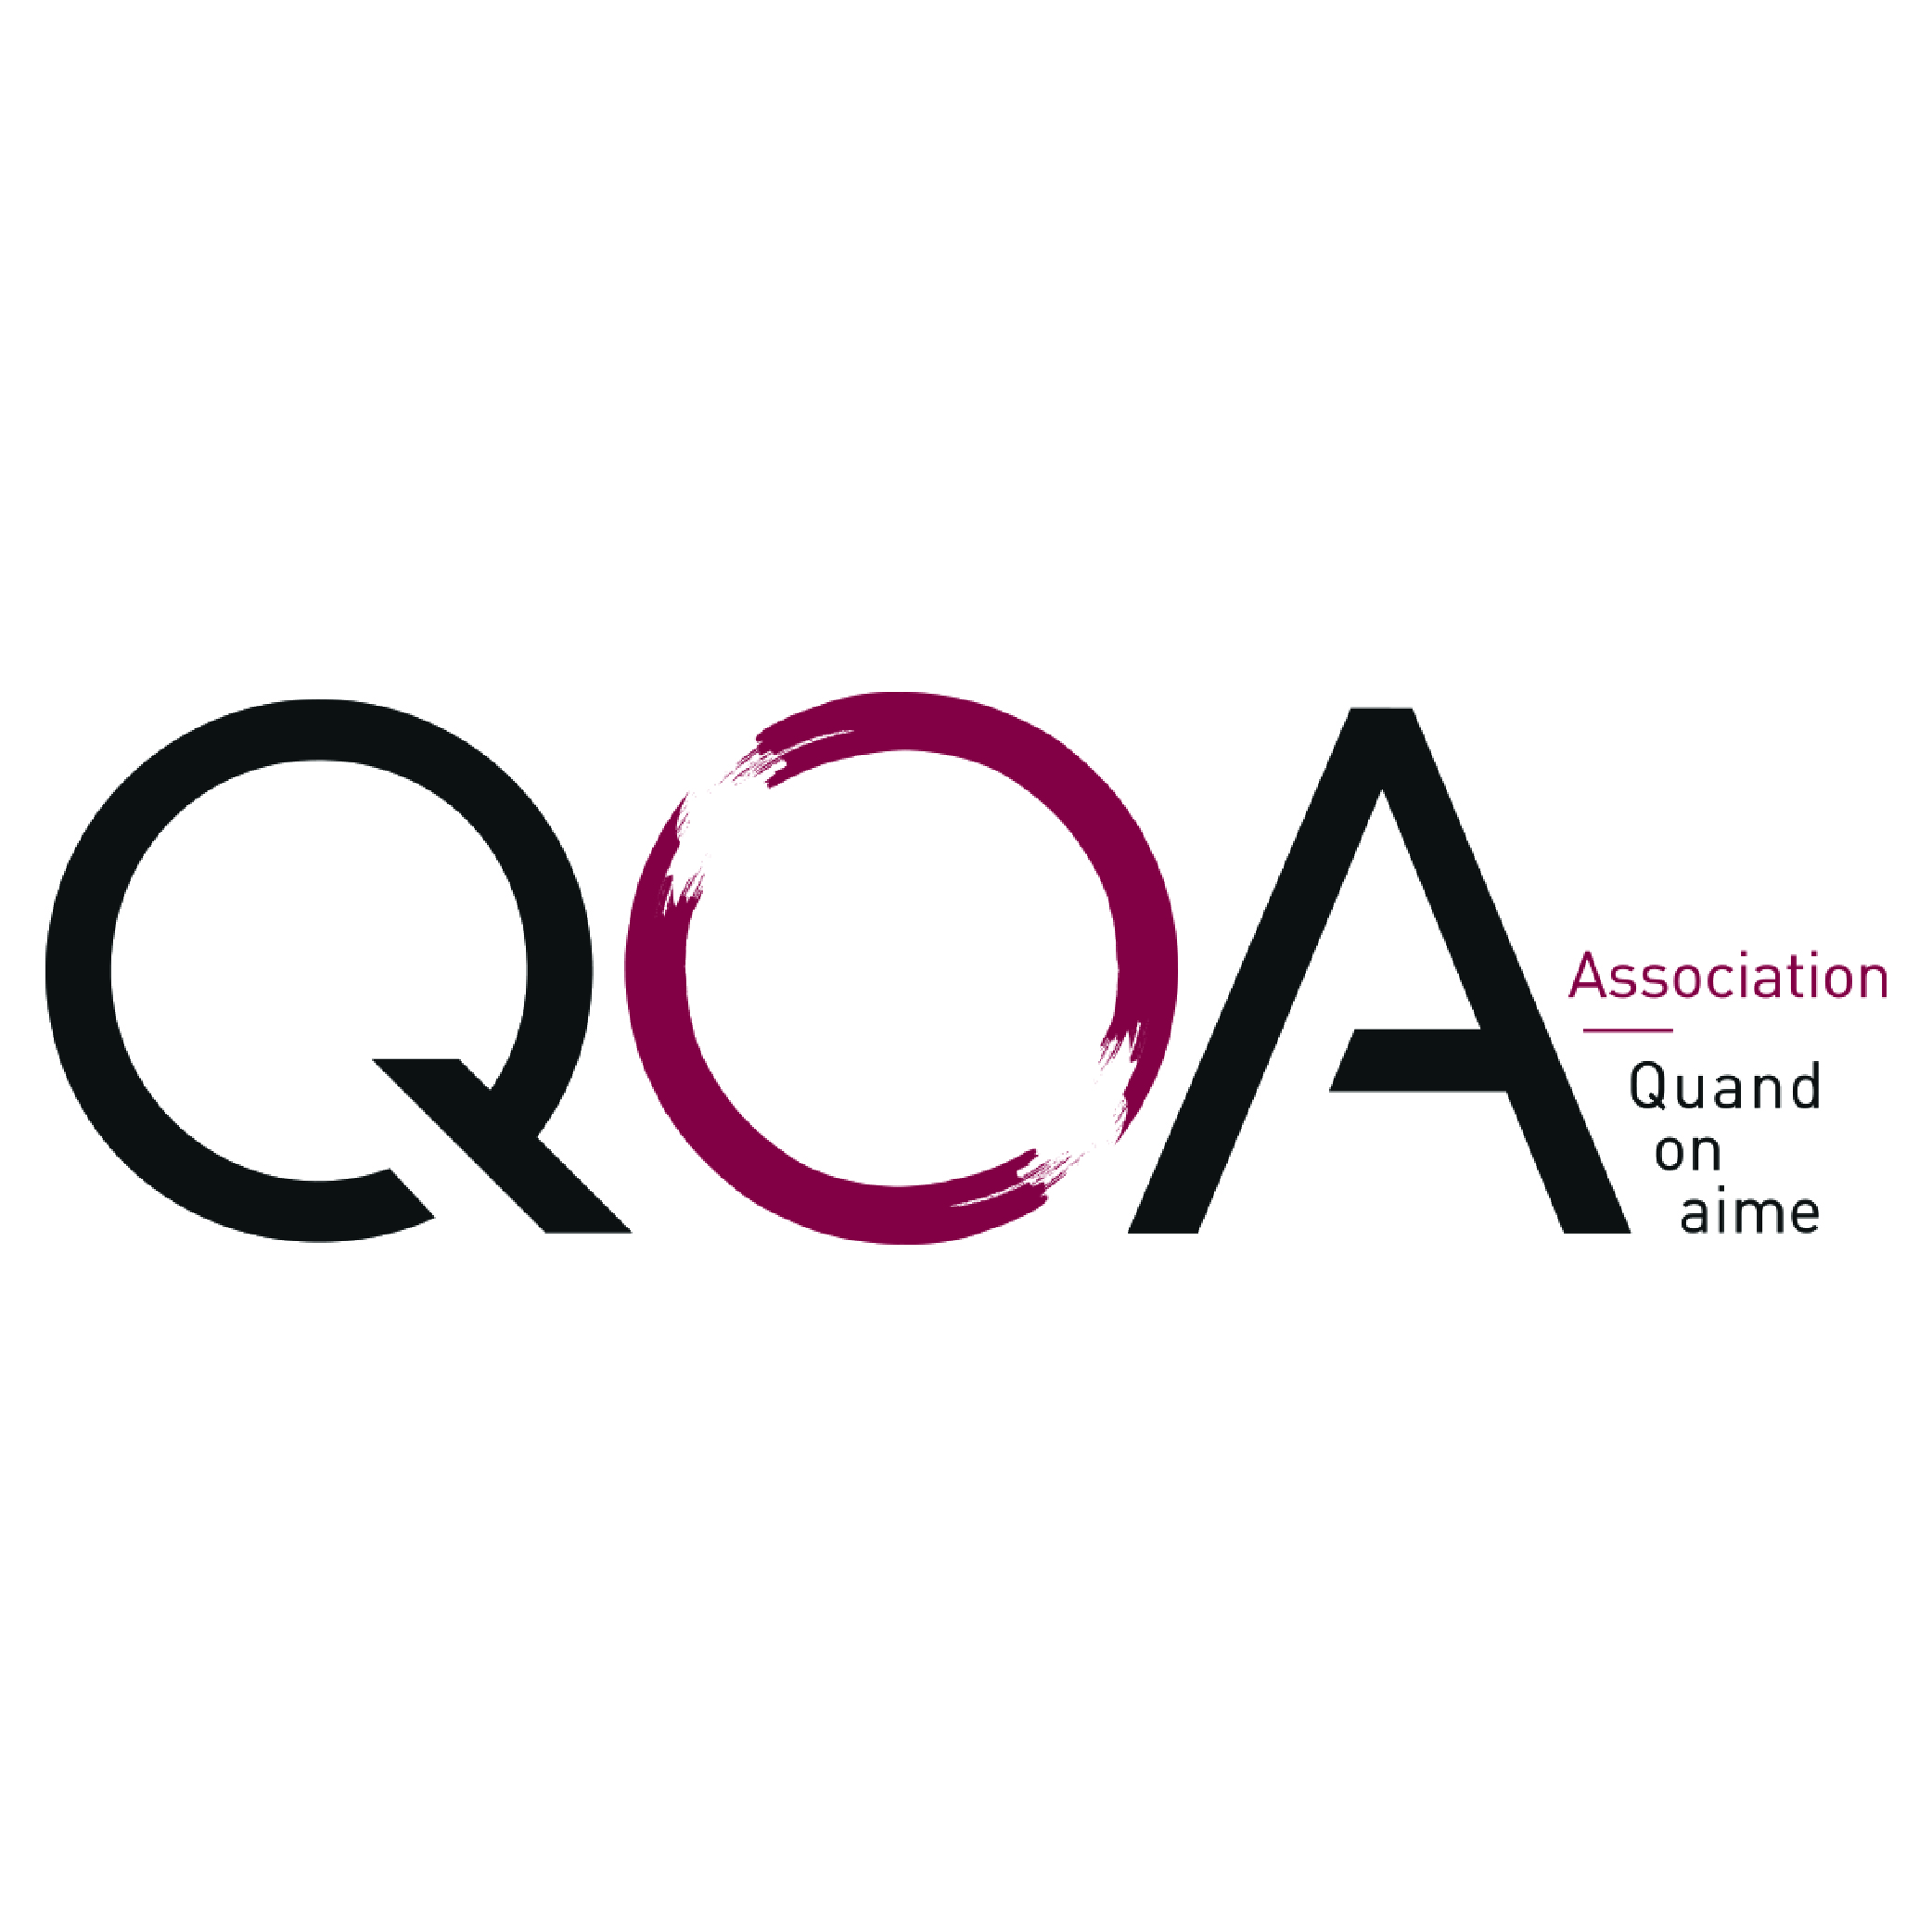 Association - QOA-Quand on aime